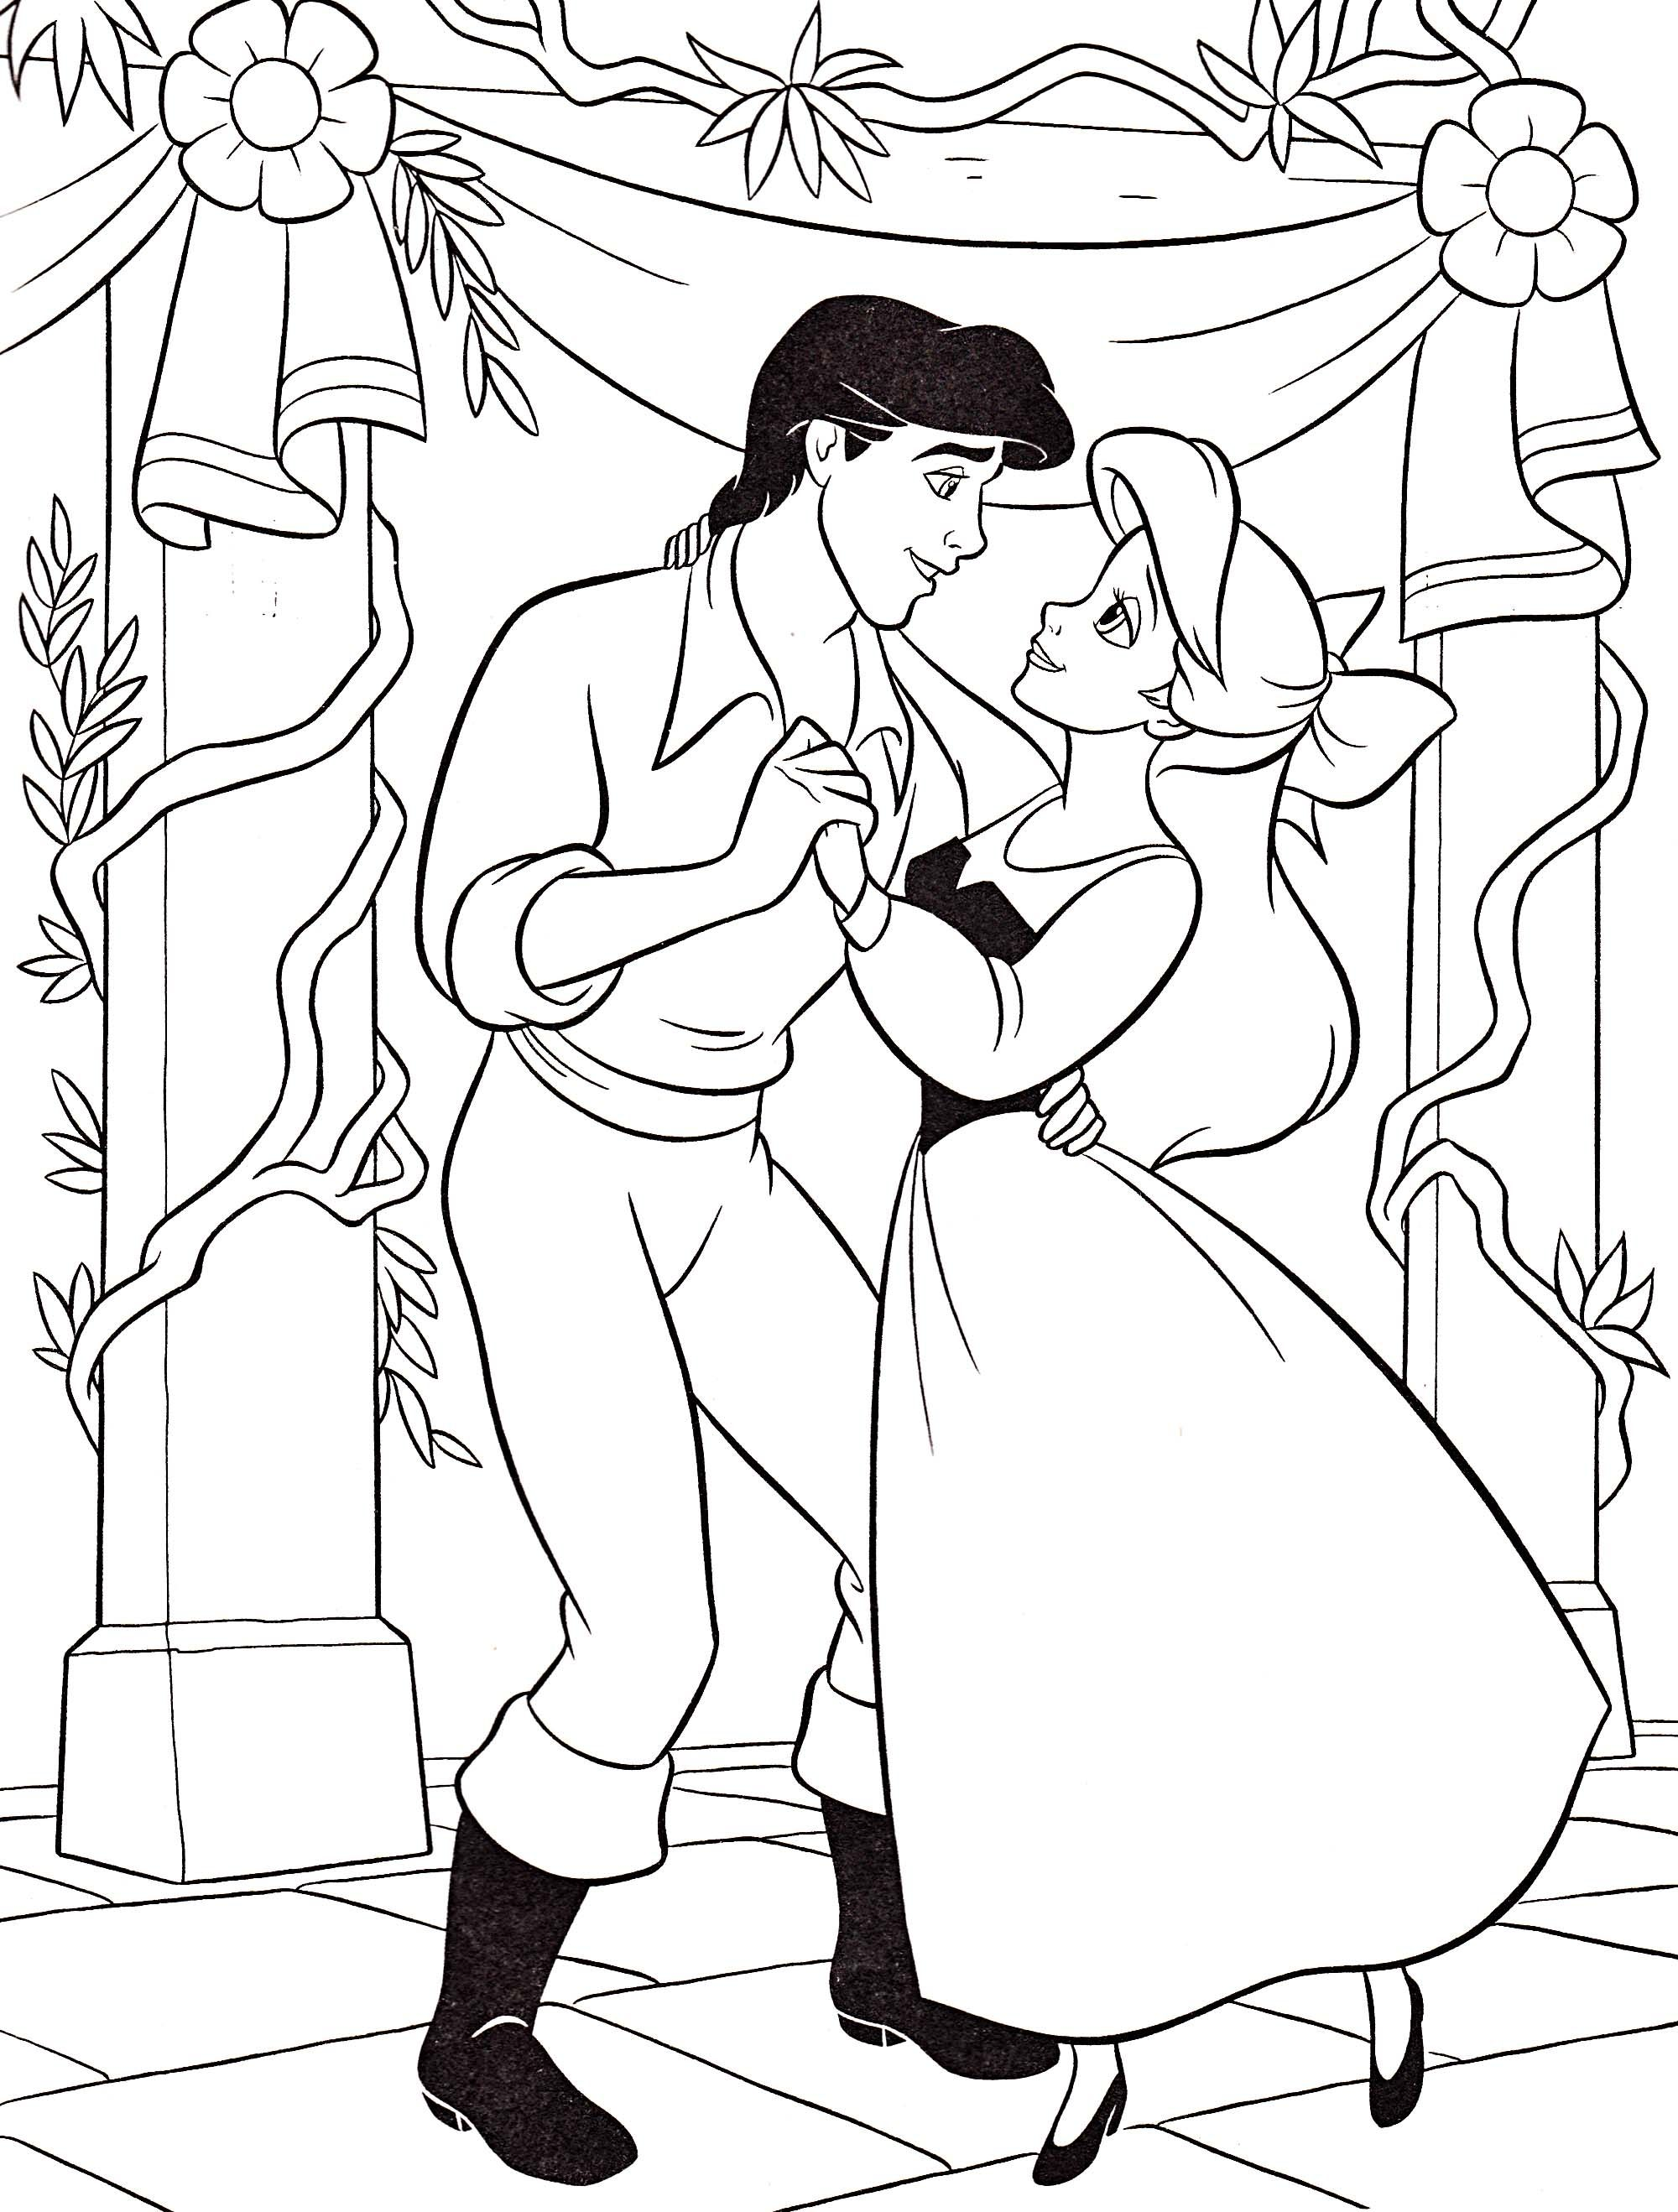 Princess Ariel Is Being Danced With Eric Coloring Pages | Disney ...